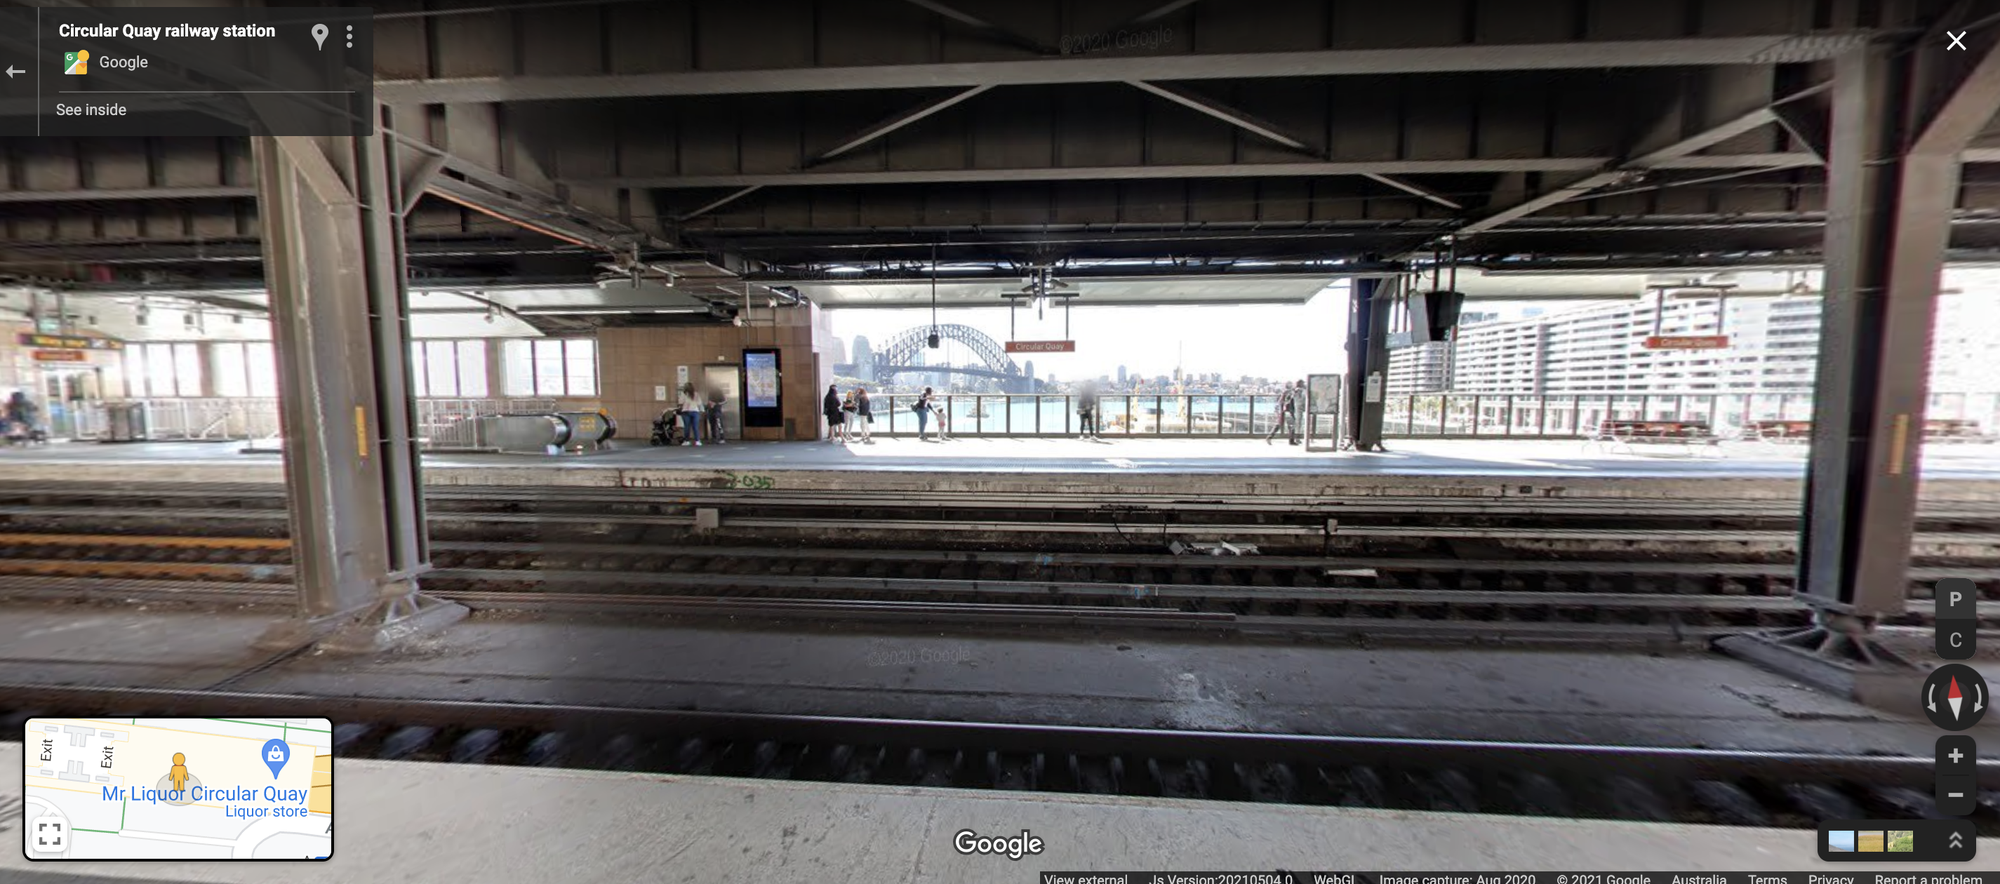 Plan and find your way in stations with new, accessible Maps tools